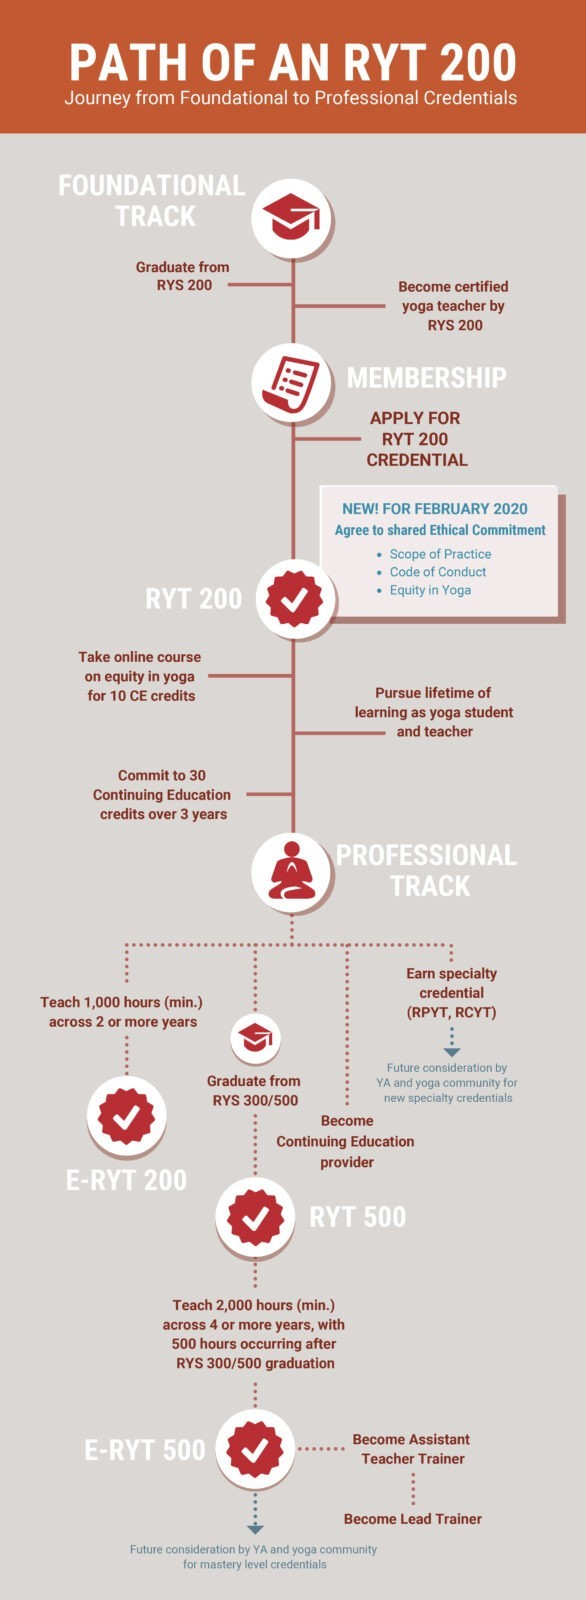 Path of a Registered Yoga Teacher